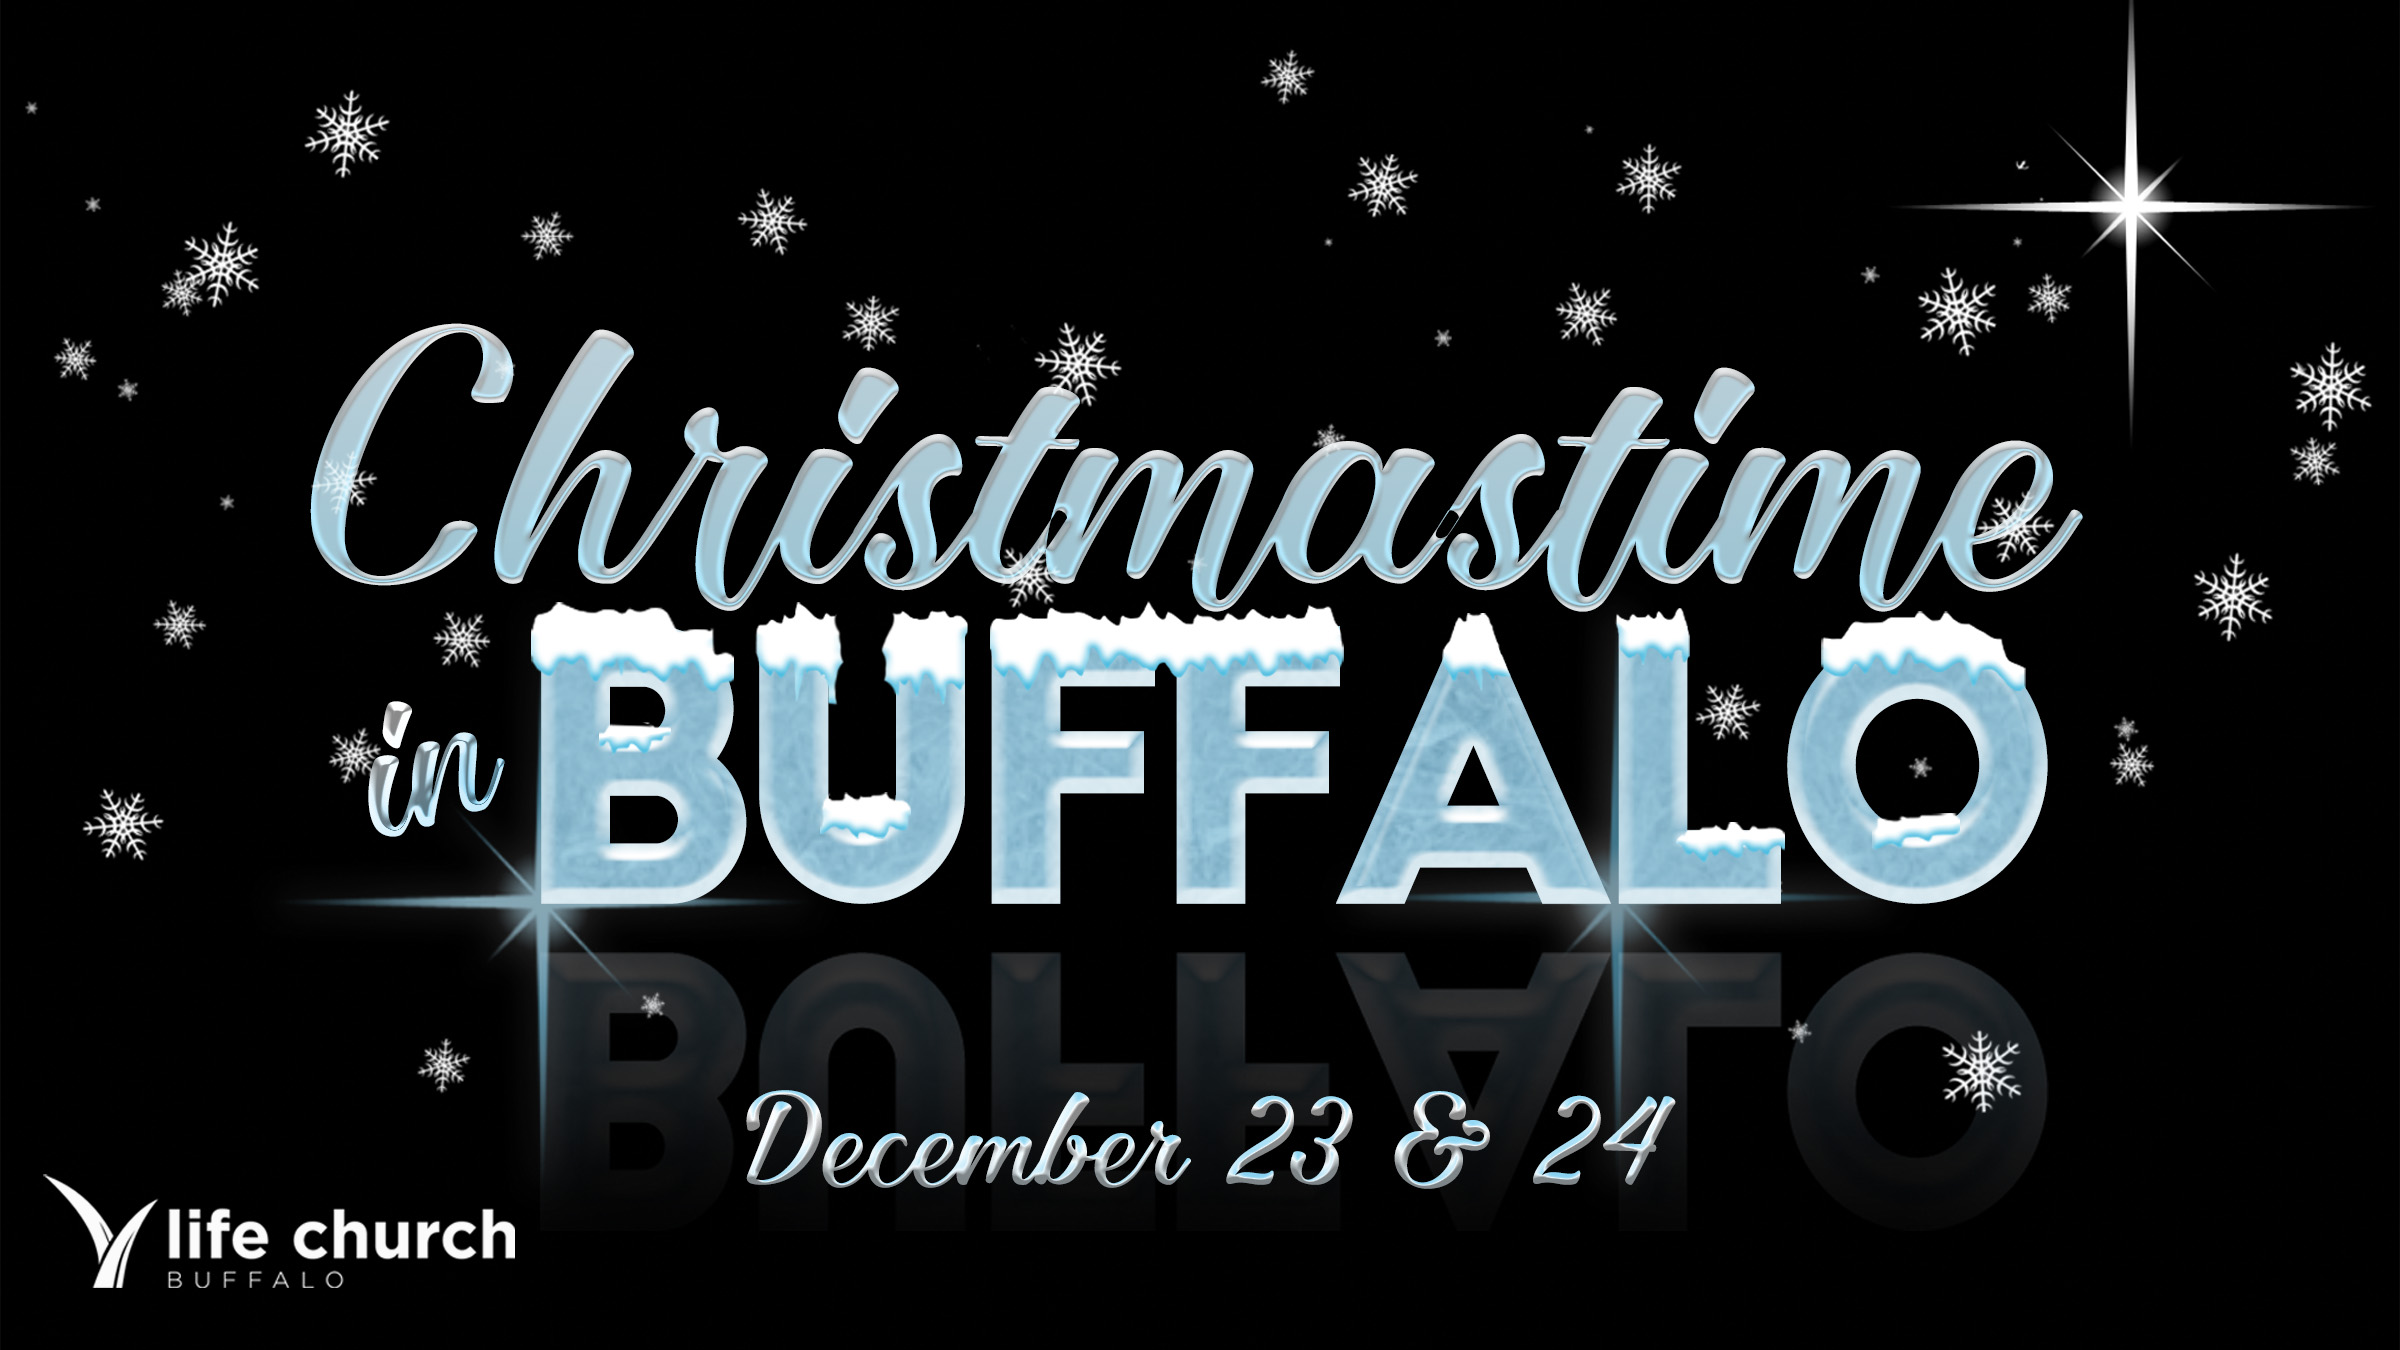 Christmastime In Buffalo: What Heaven Saw